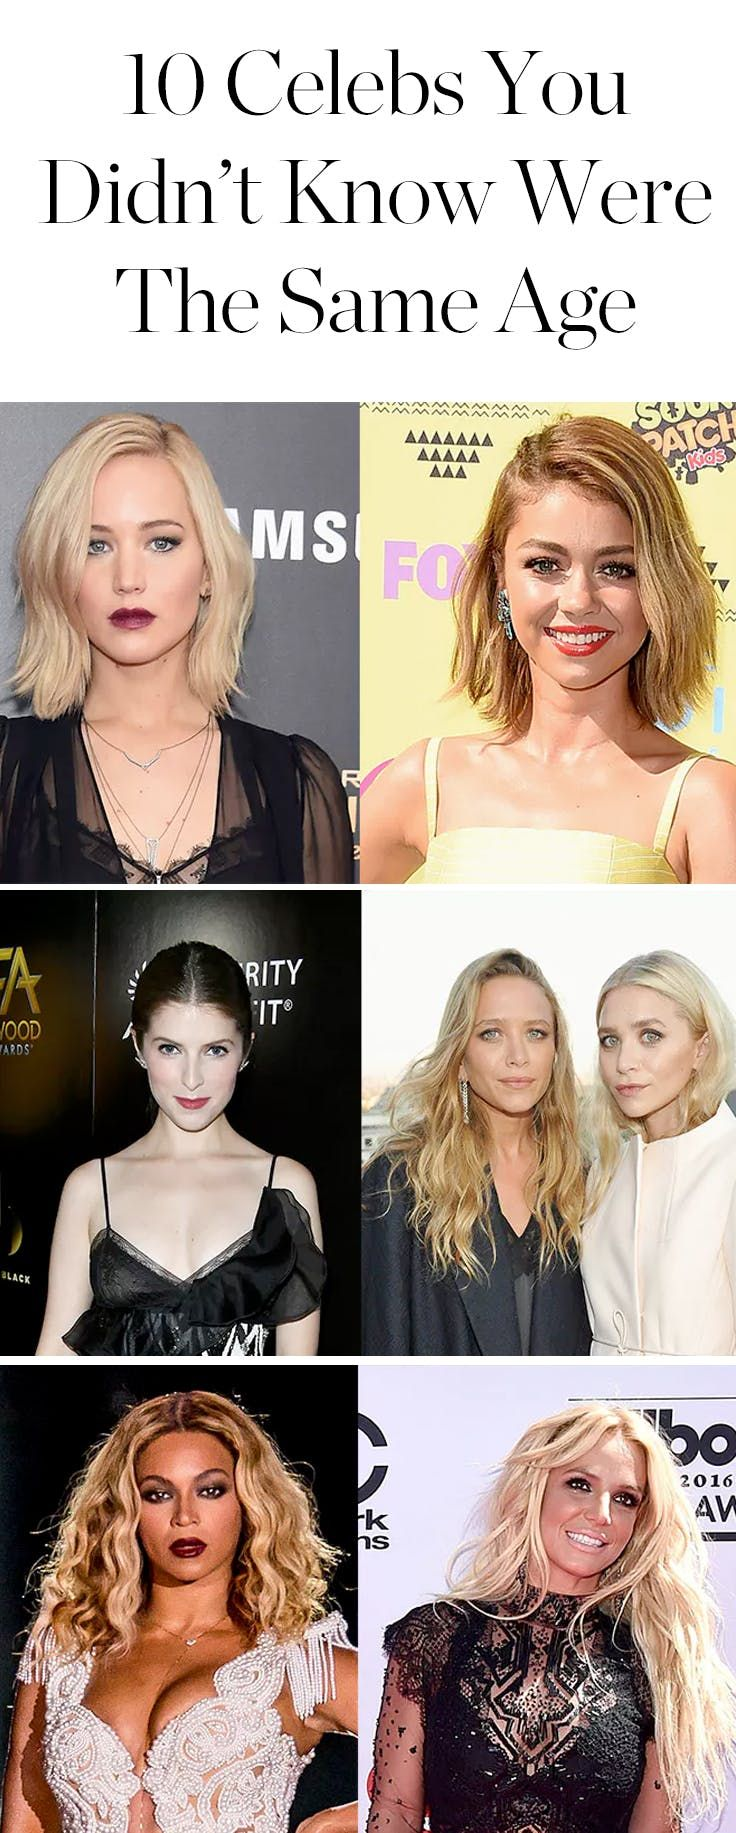 Whoa! Jennifer Lawrence and Sarah Hyland Are the Same Age (and 9 Other Celeb Duos That Will Surprise You) via @PureWow